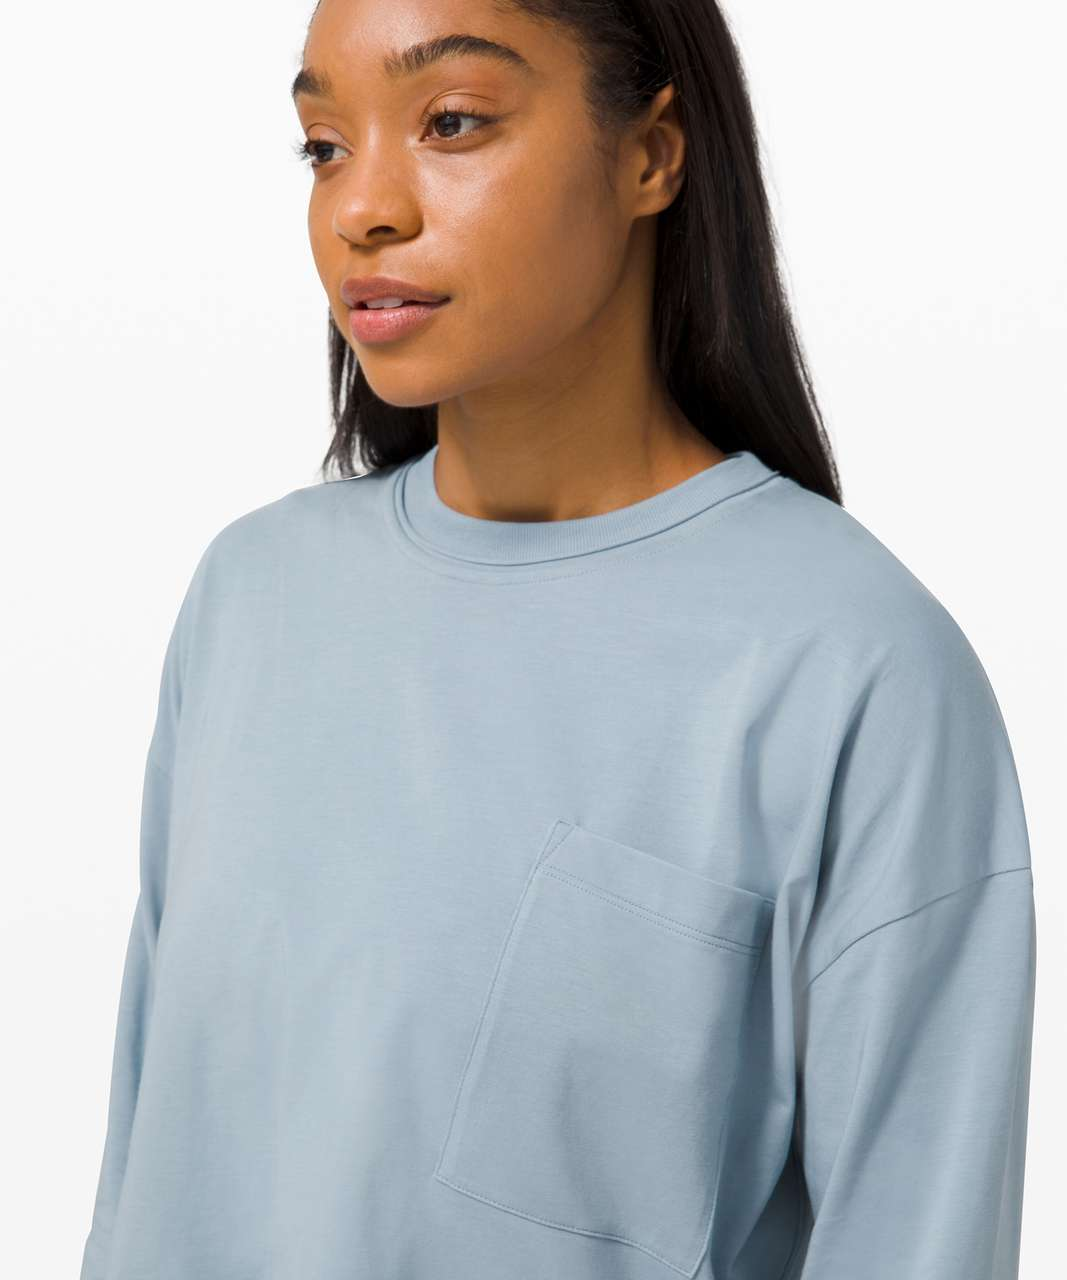 Lululemon Check the Box Long Sleeve - Chambray